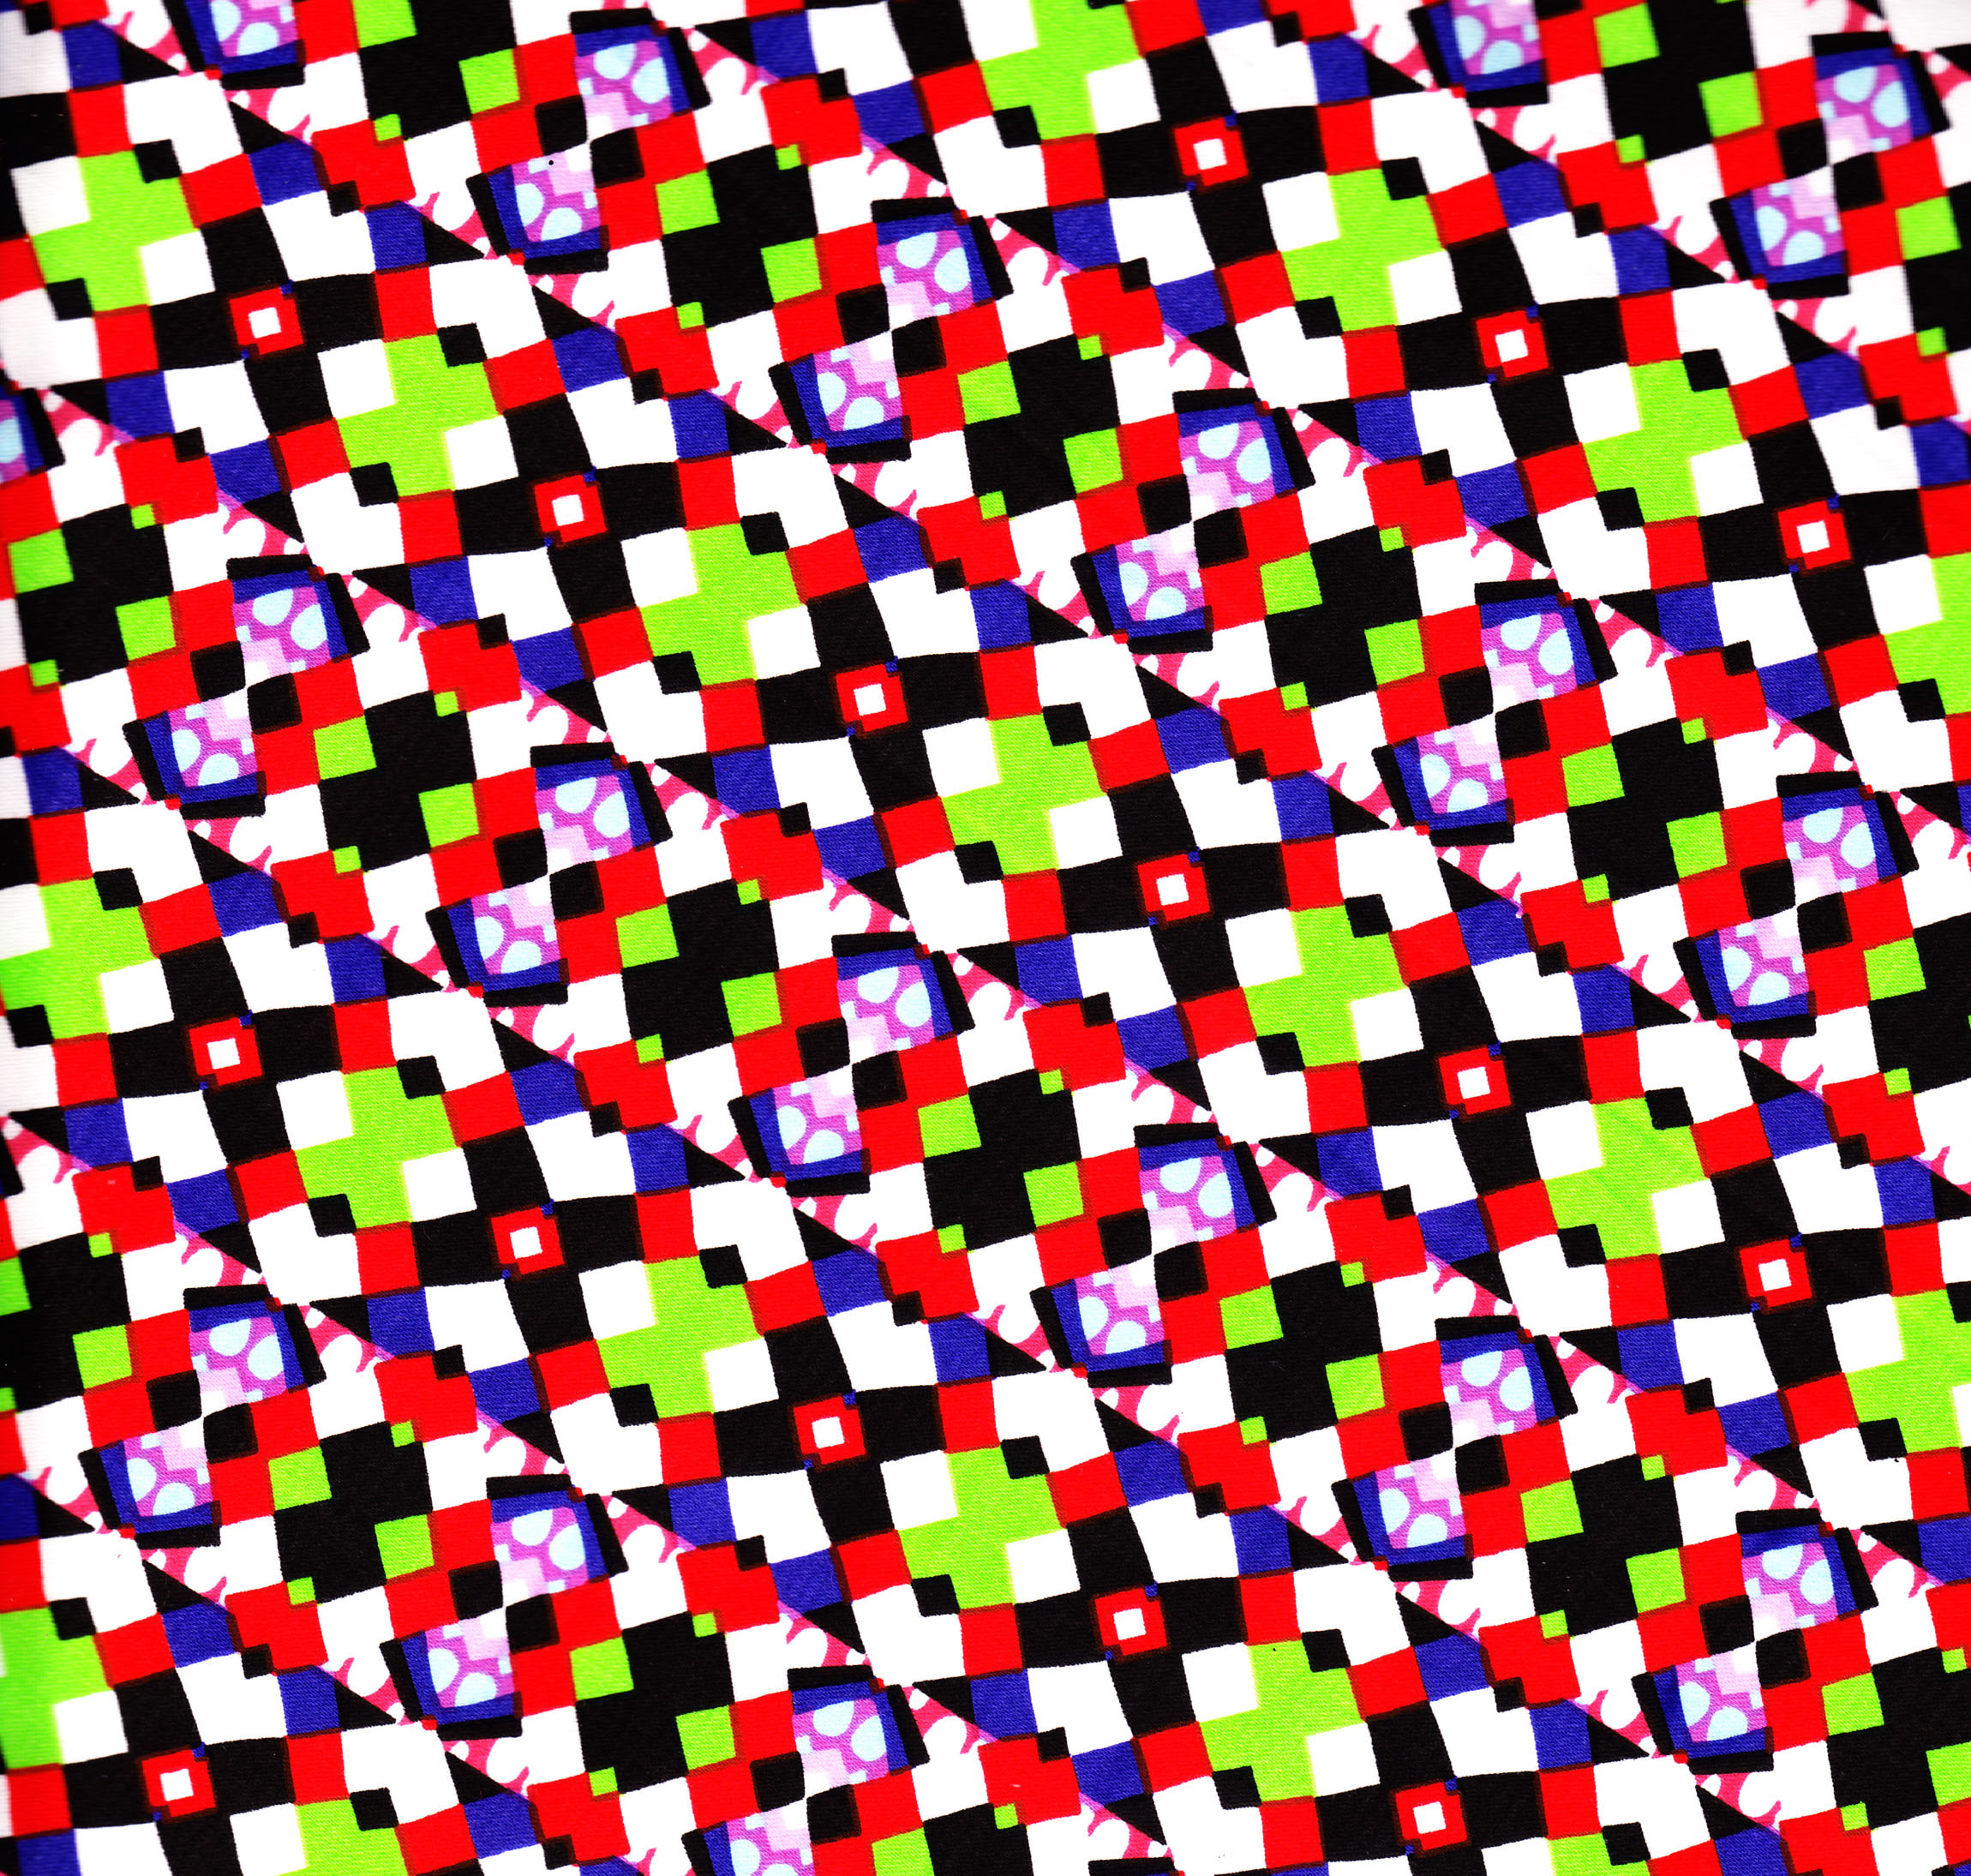 RANDMAS_FABRIC_SCANS_SWATCH_5B.jpg